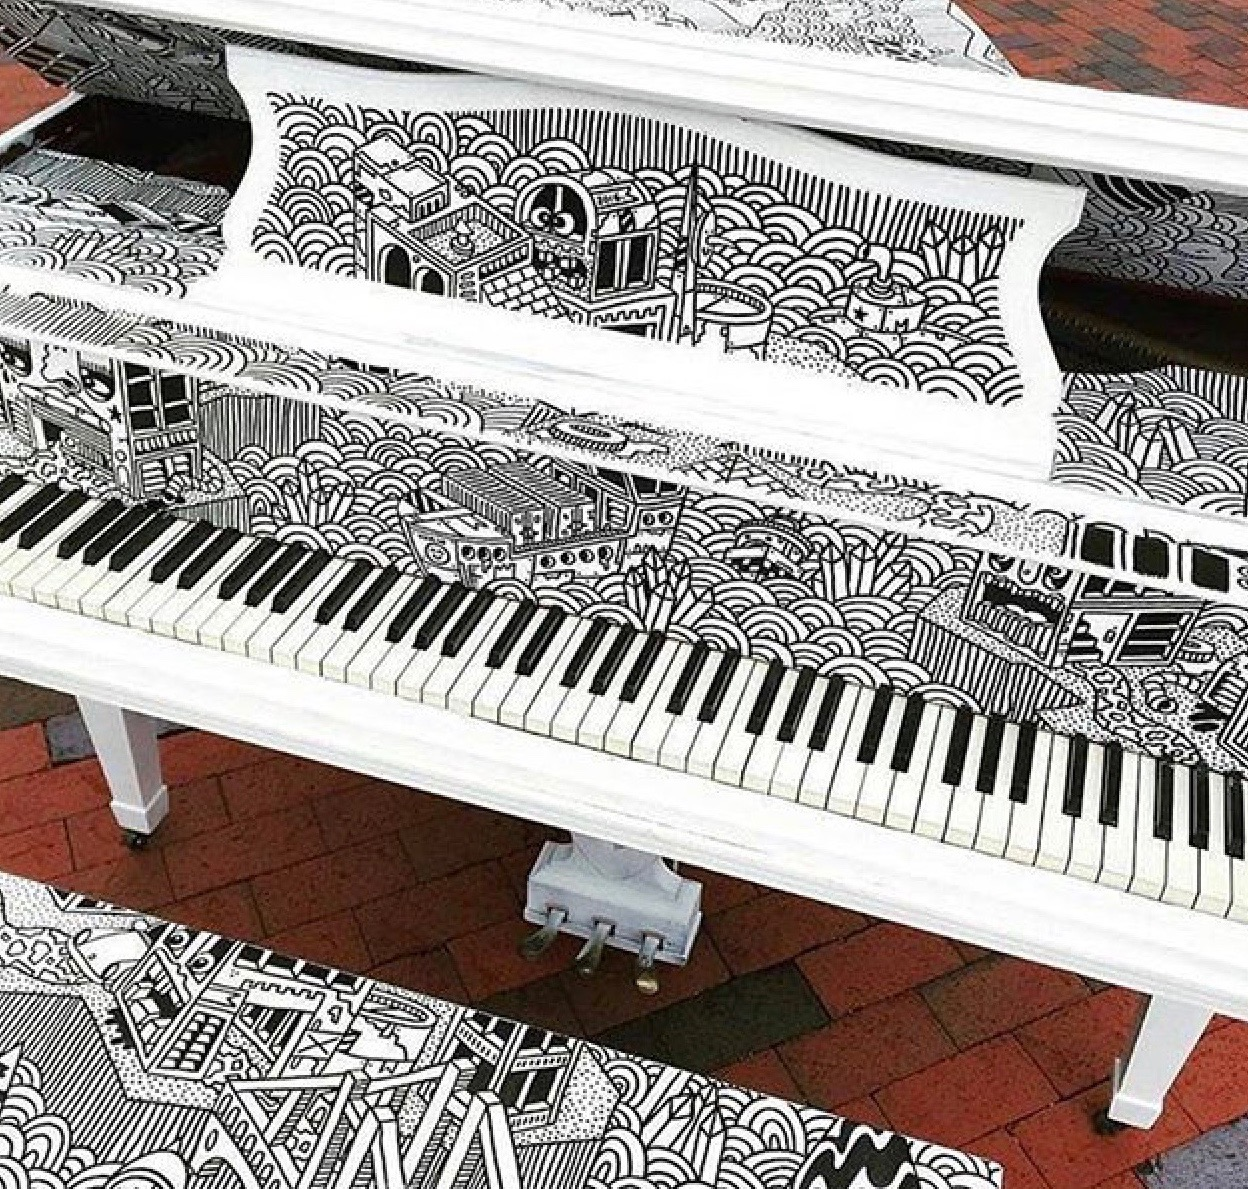 Artful Pianos... - Article and photos announcing Newton Festival of the Arts 'Artful Piano' schedule. Spring, 2016